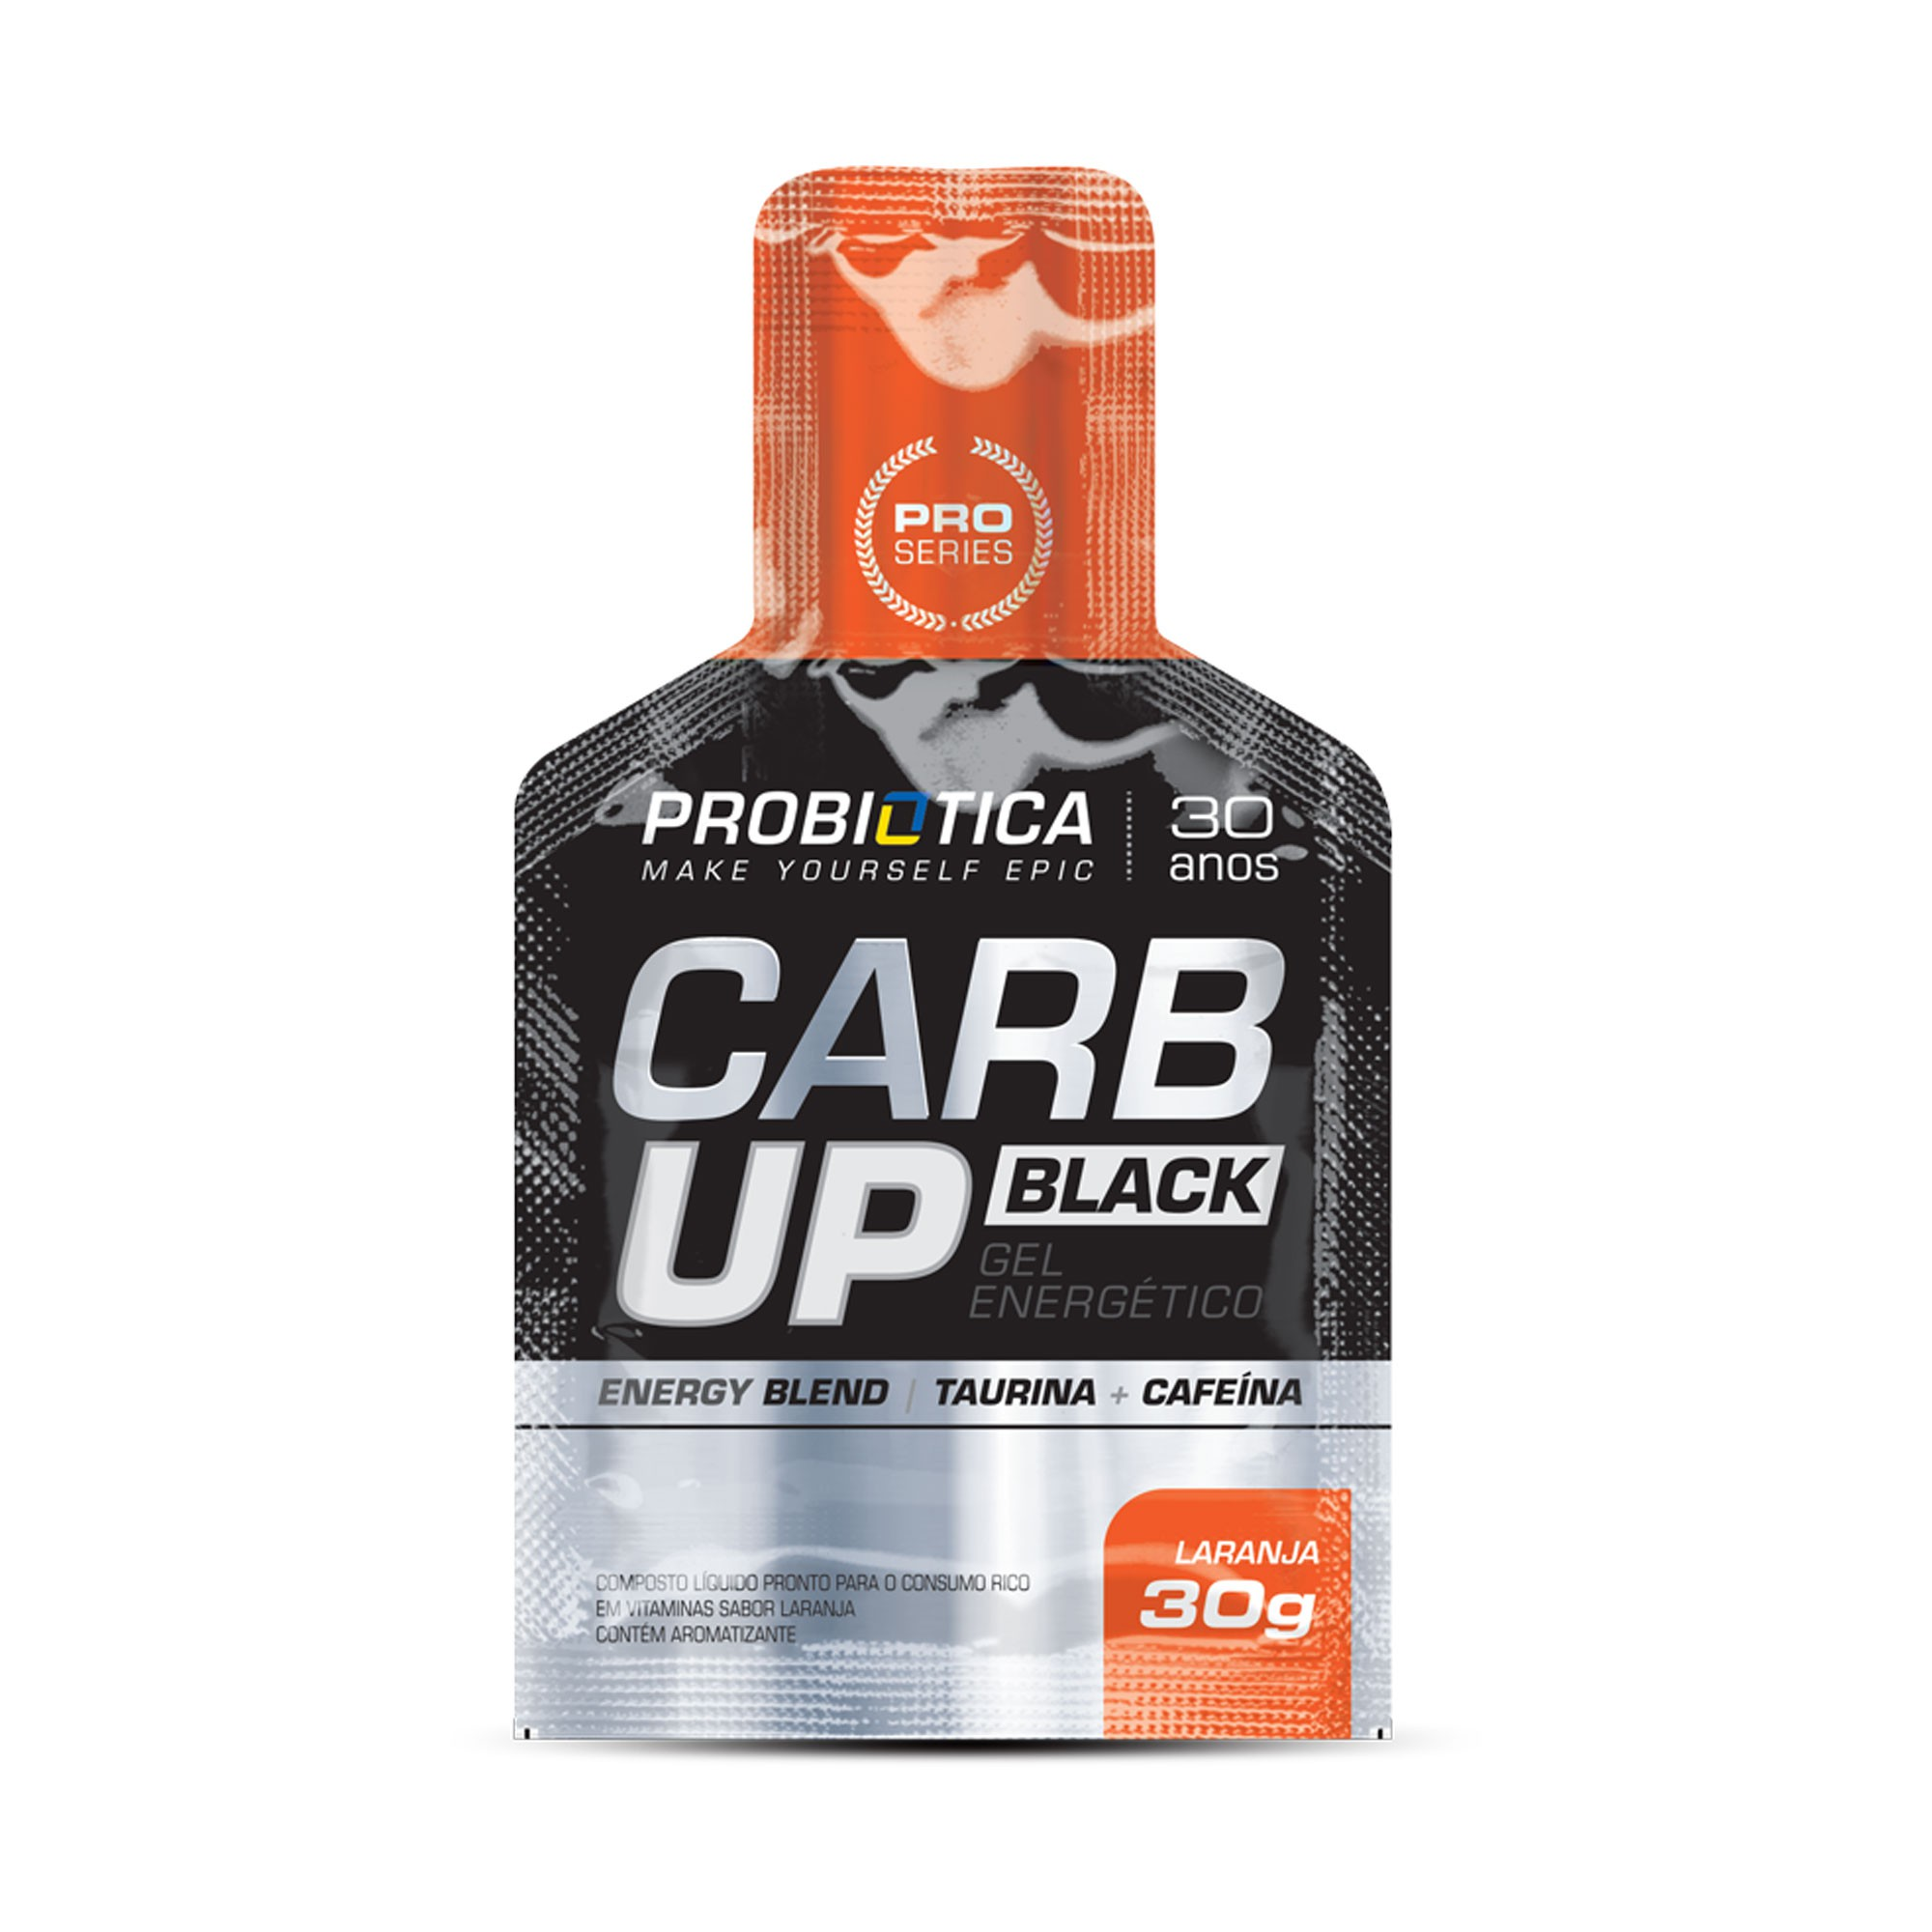 Carb up Black Gel energético Laranja Probiotica 30g